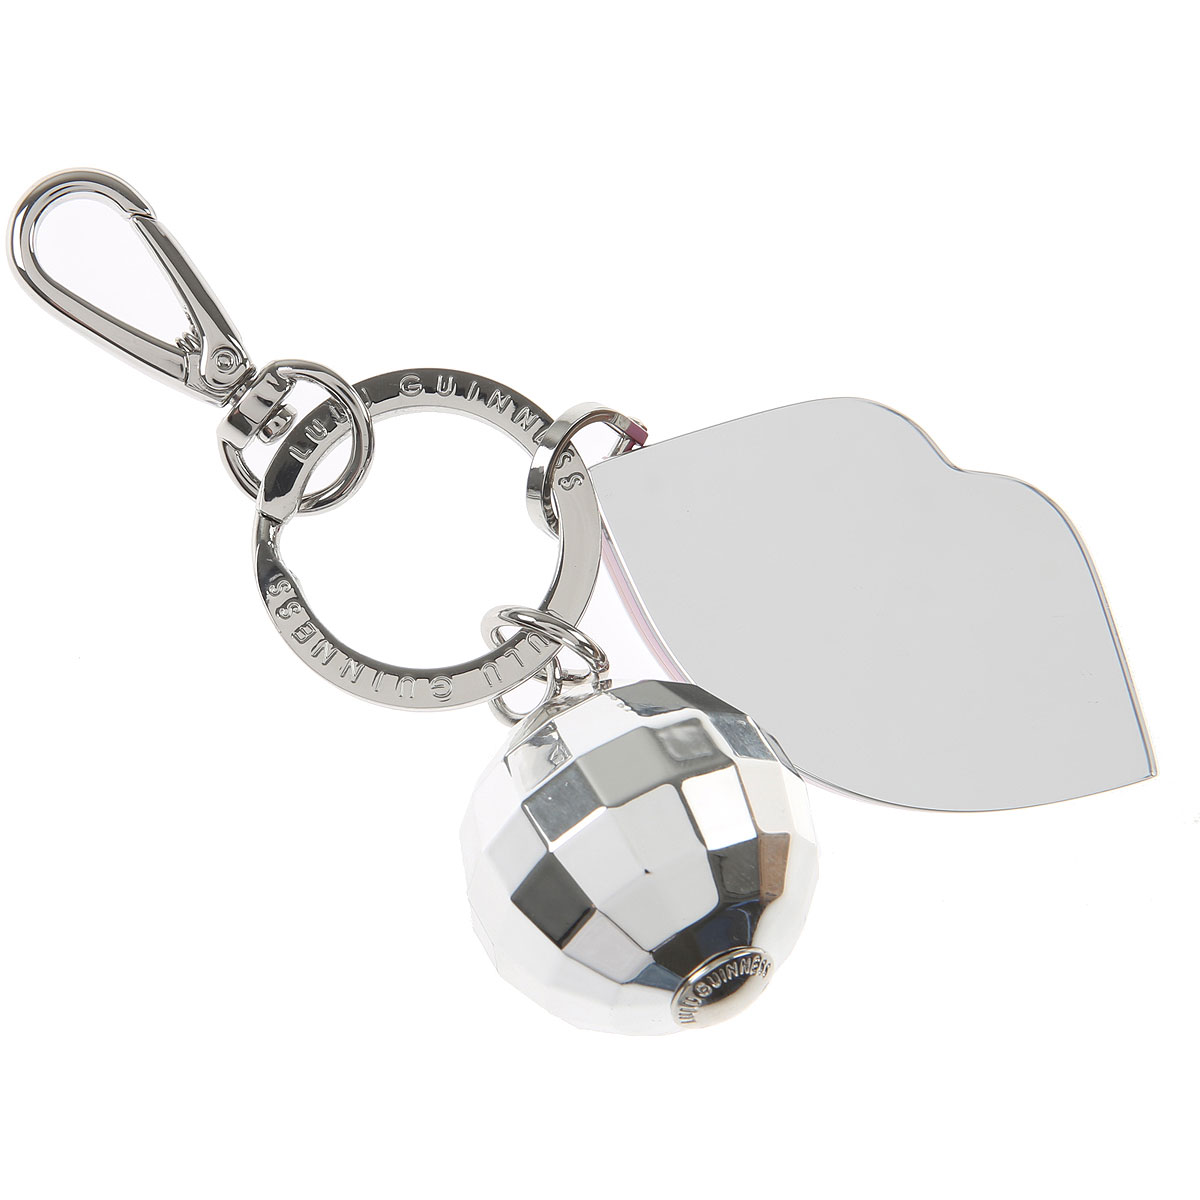 Lulu Guinness Key Chain for Women, Key Ring On Sale, Silver, perspex, 2019